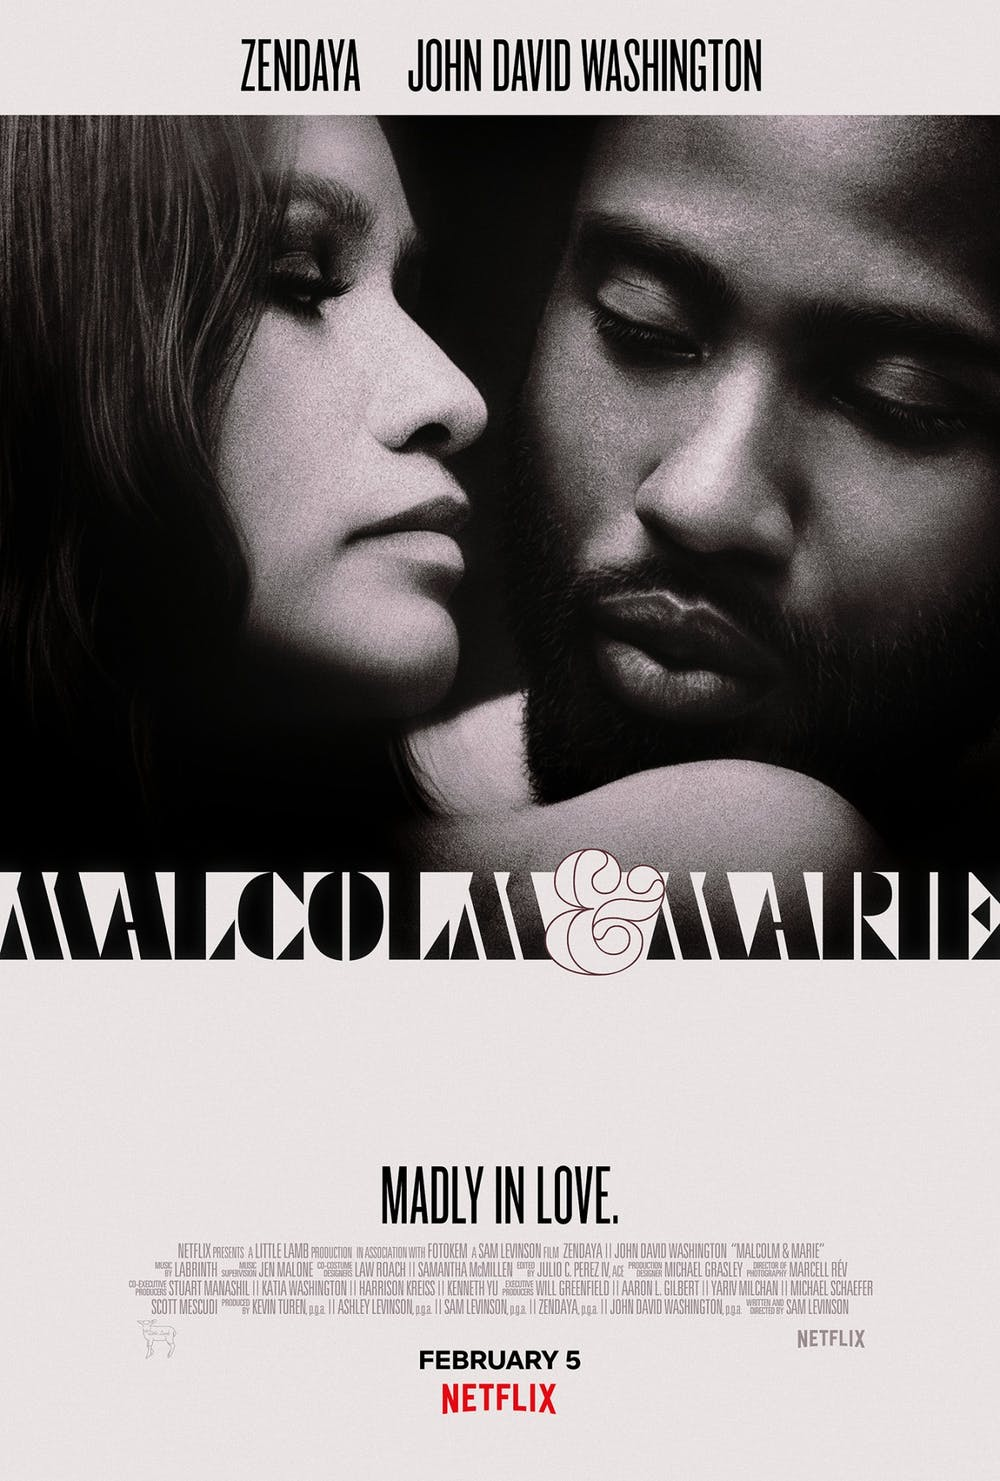 """Malcolm and Marie"" is a romantic drama focusing on the titular couple Malcolm, played by John David Washington, and Marie, played by Zendaya."